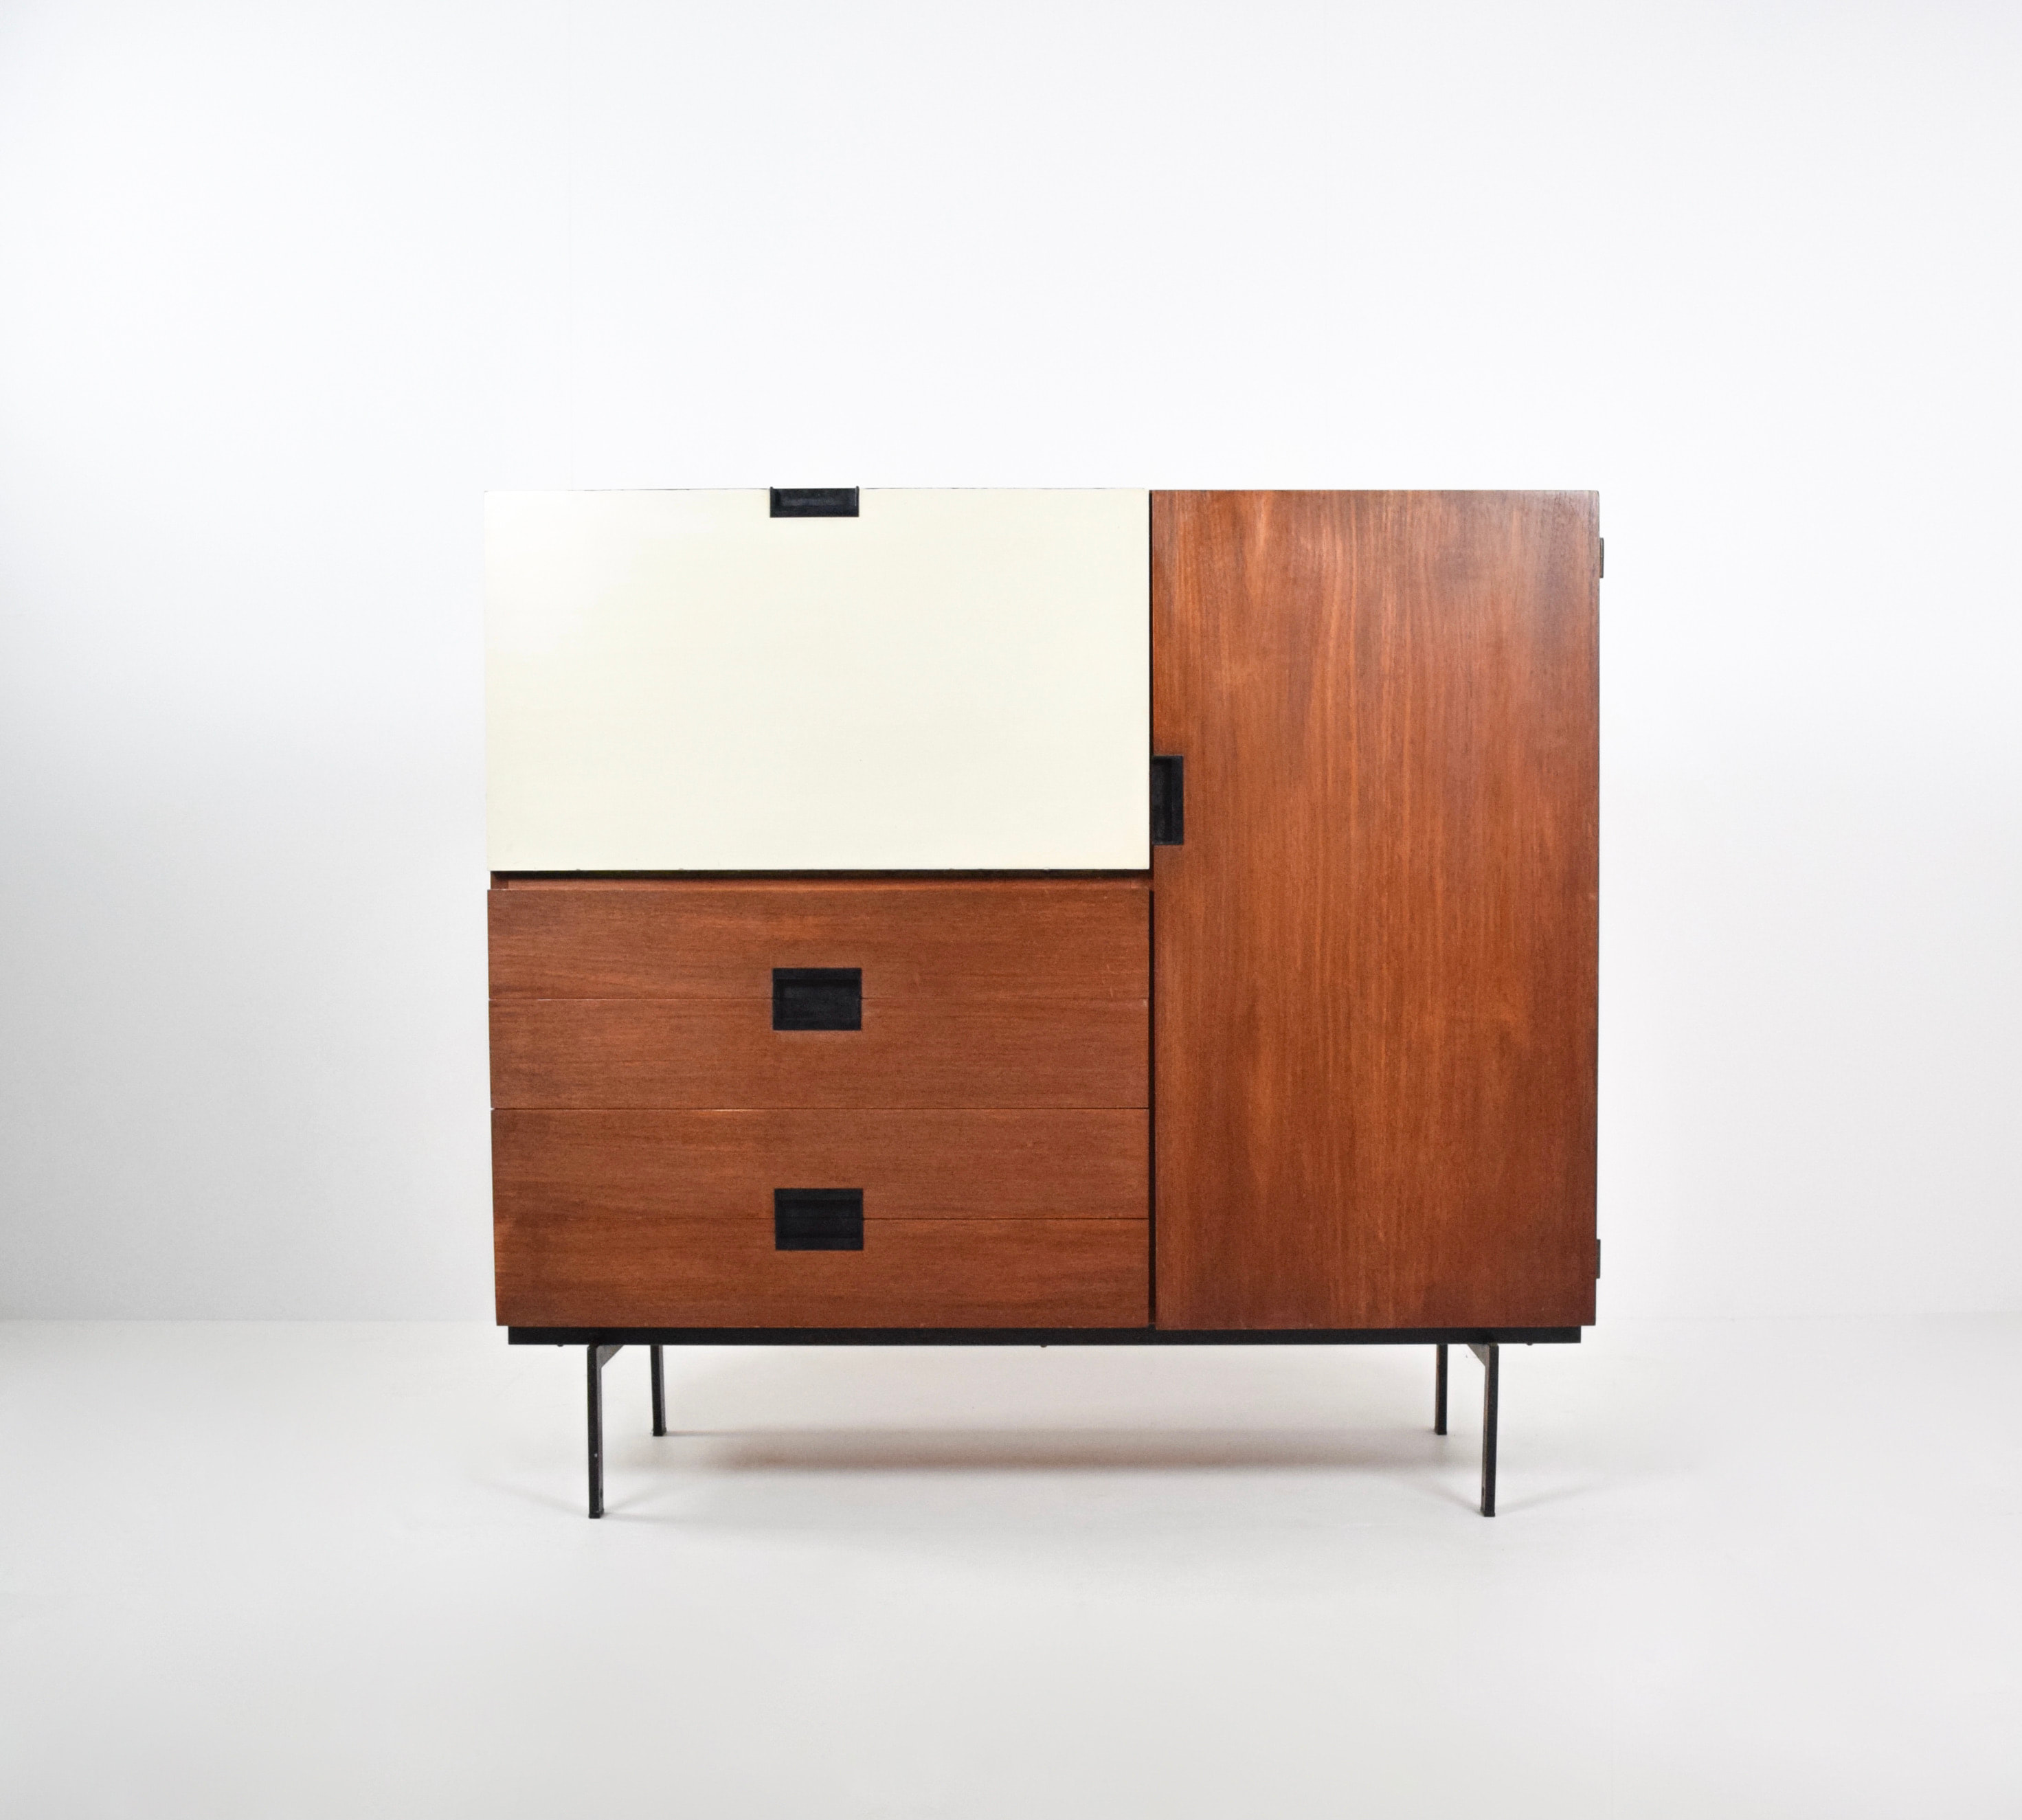 Highboard by Cees Braakman for Pastoe the Japan Series, The Netherlands 1960's